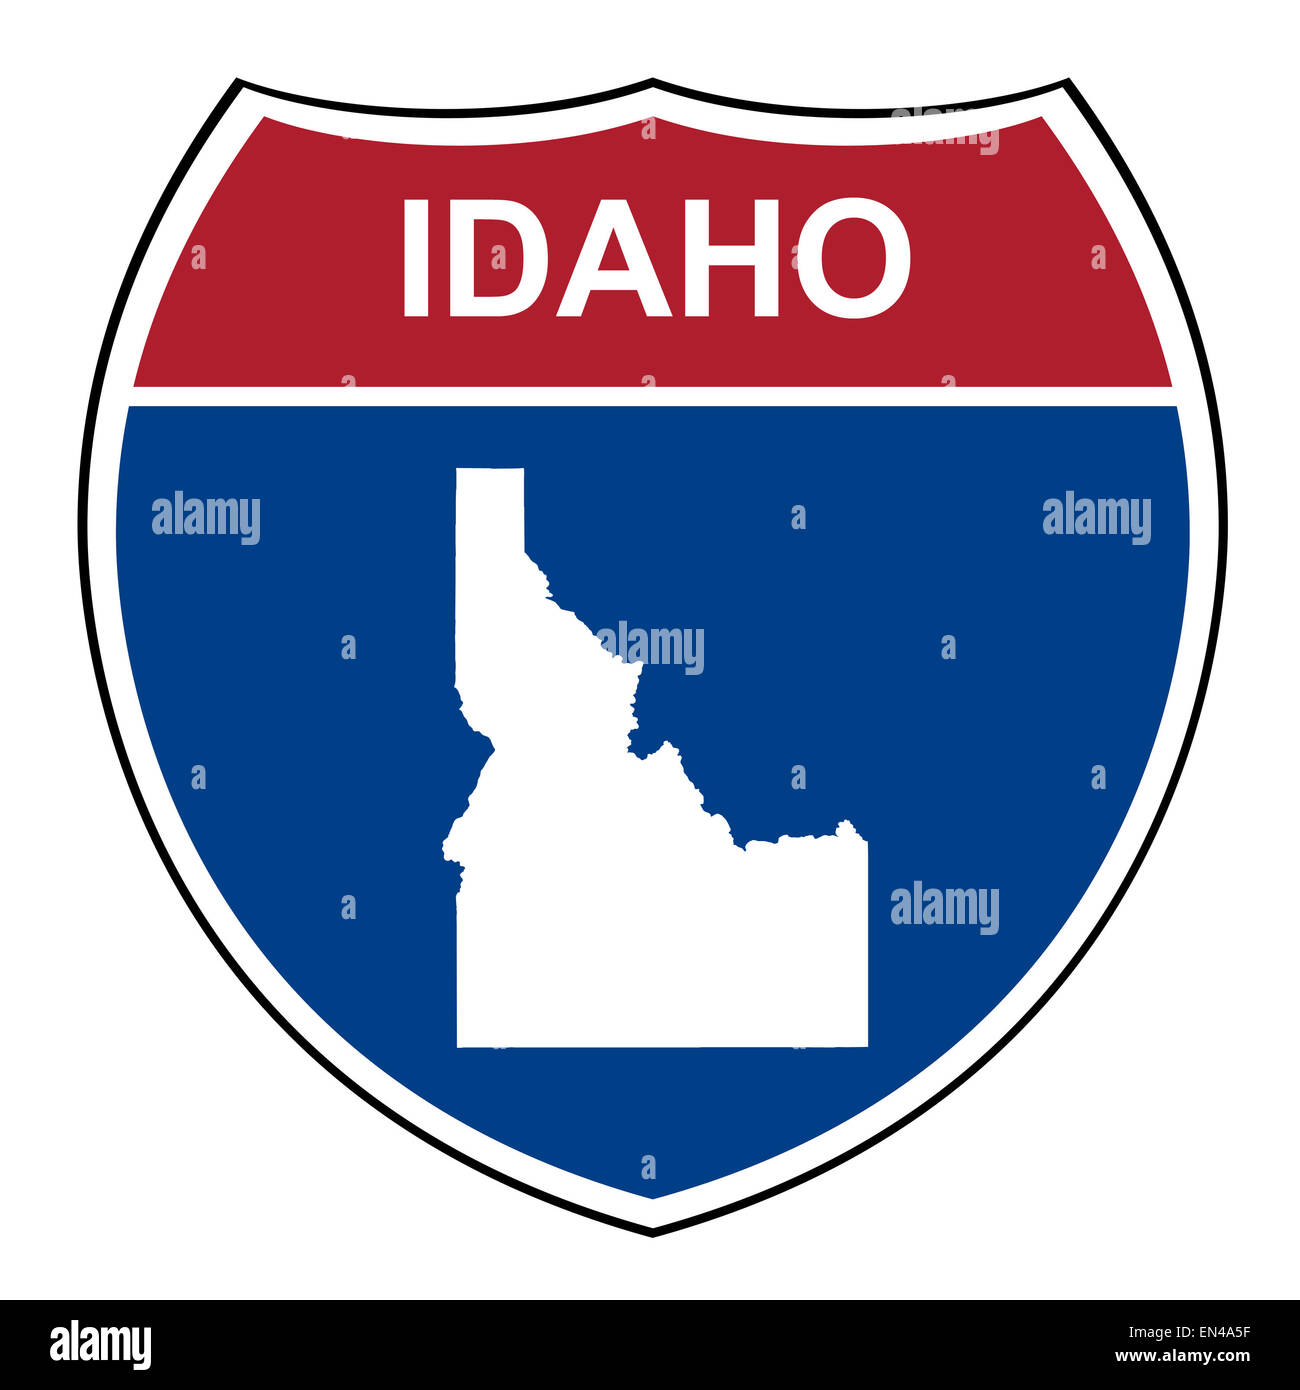 Idaho American interstate highway road shield isolated on a white background. - Stock Image